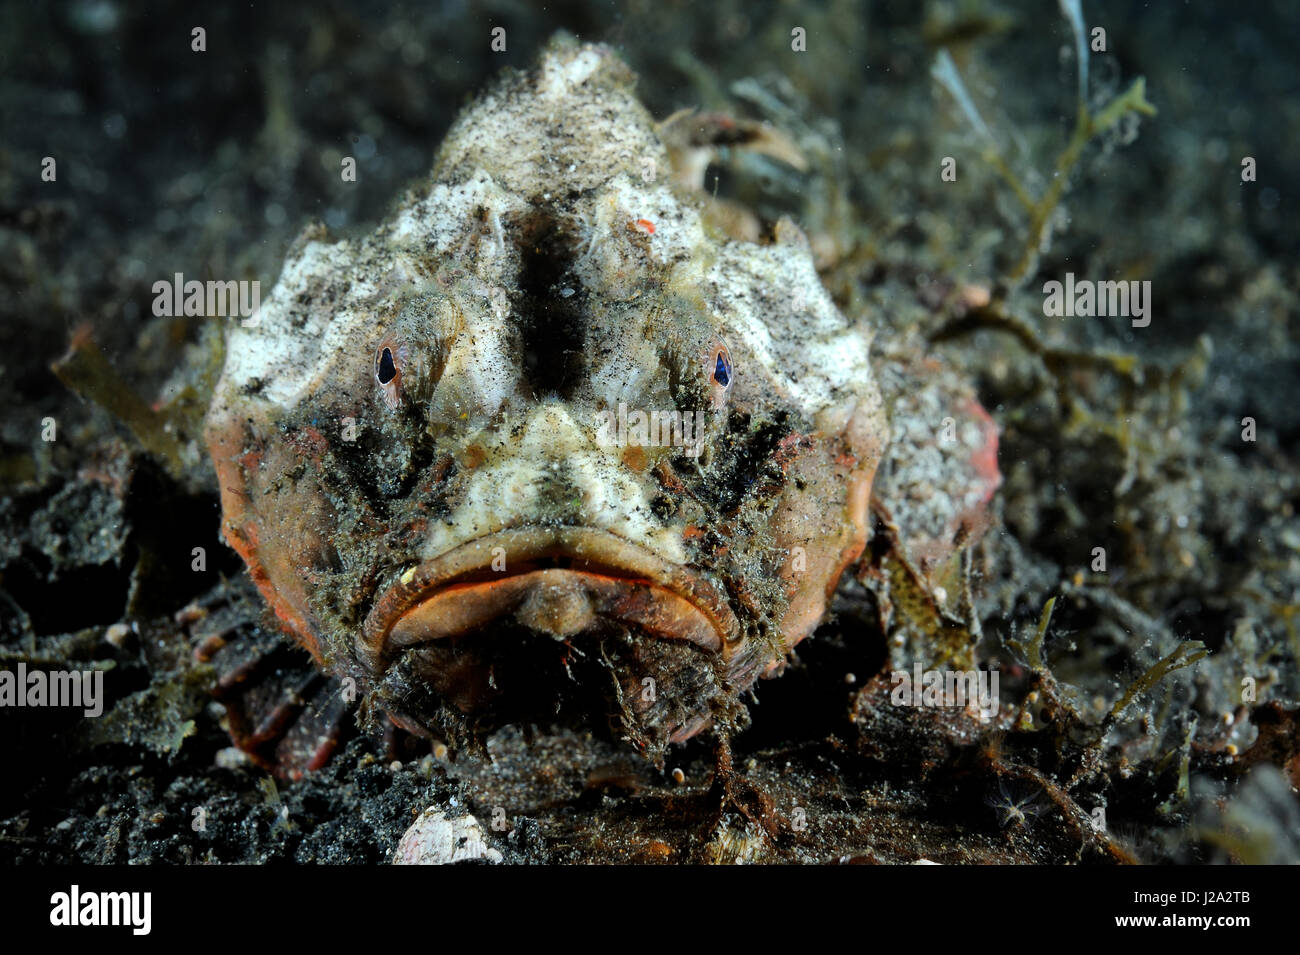 The Demon stinger fish buries itself in partially to suddenly grab prey from the ambush - Stock Image